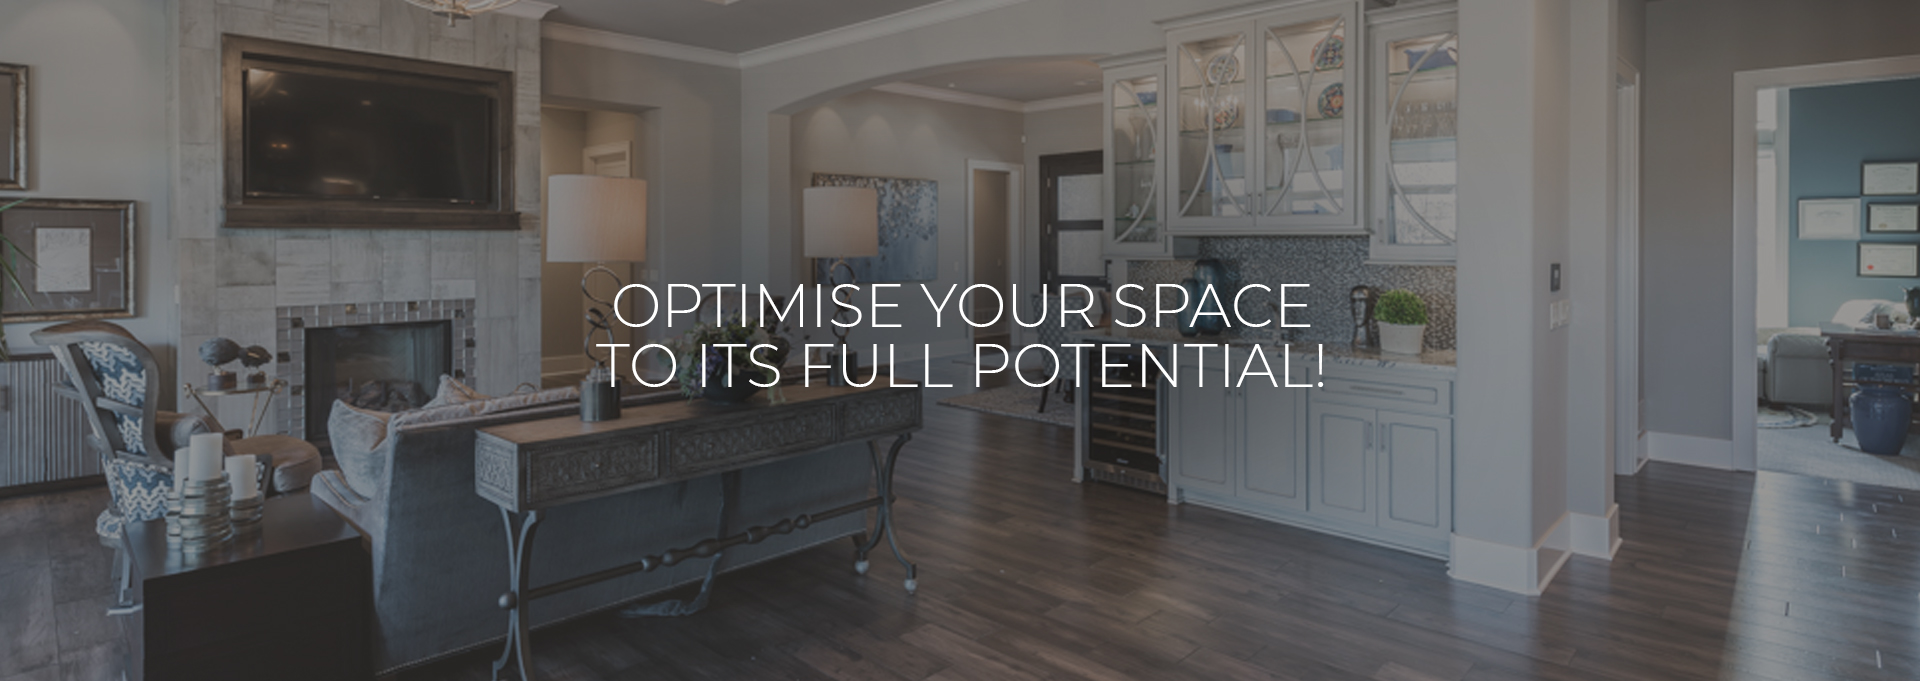 Space Planning Services Overland Park KS